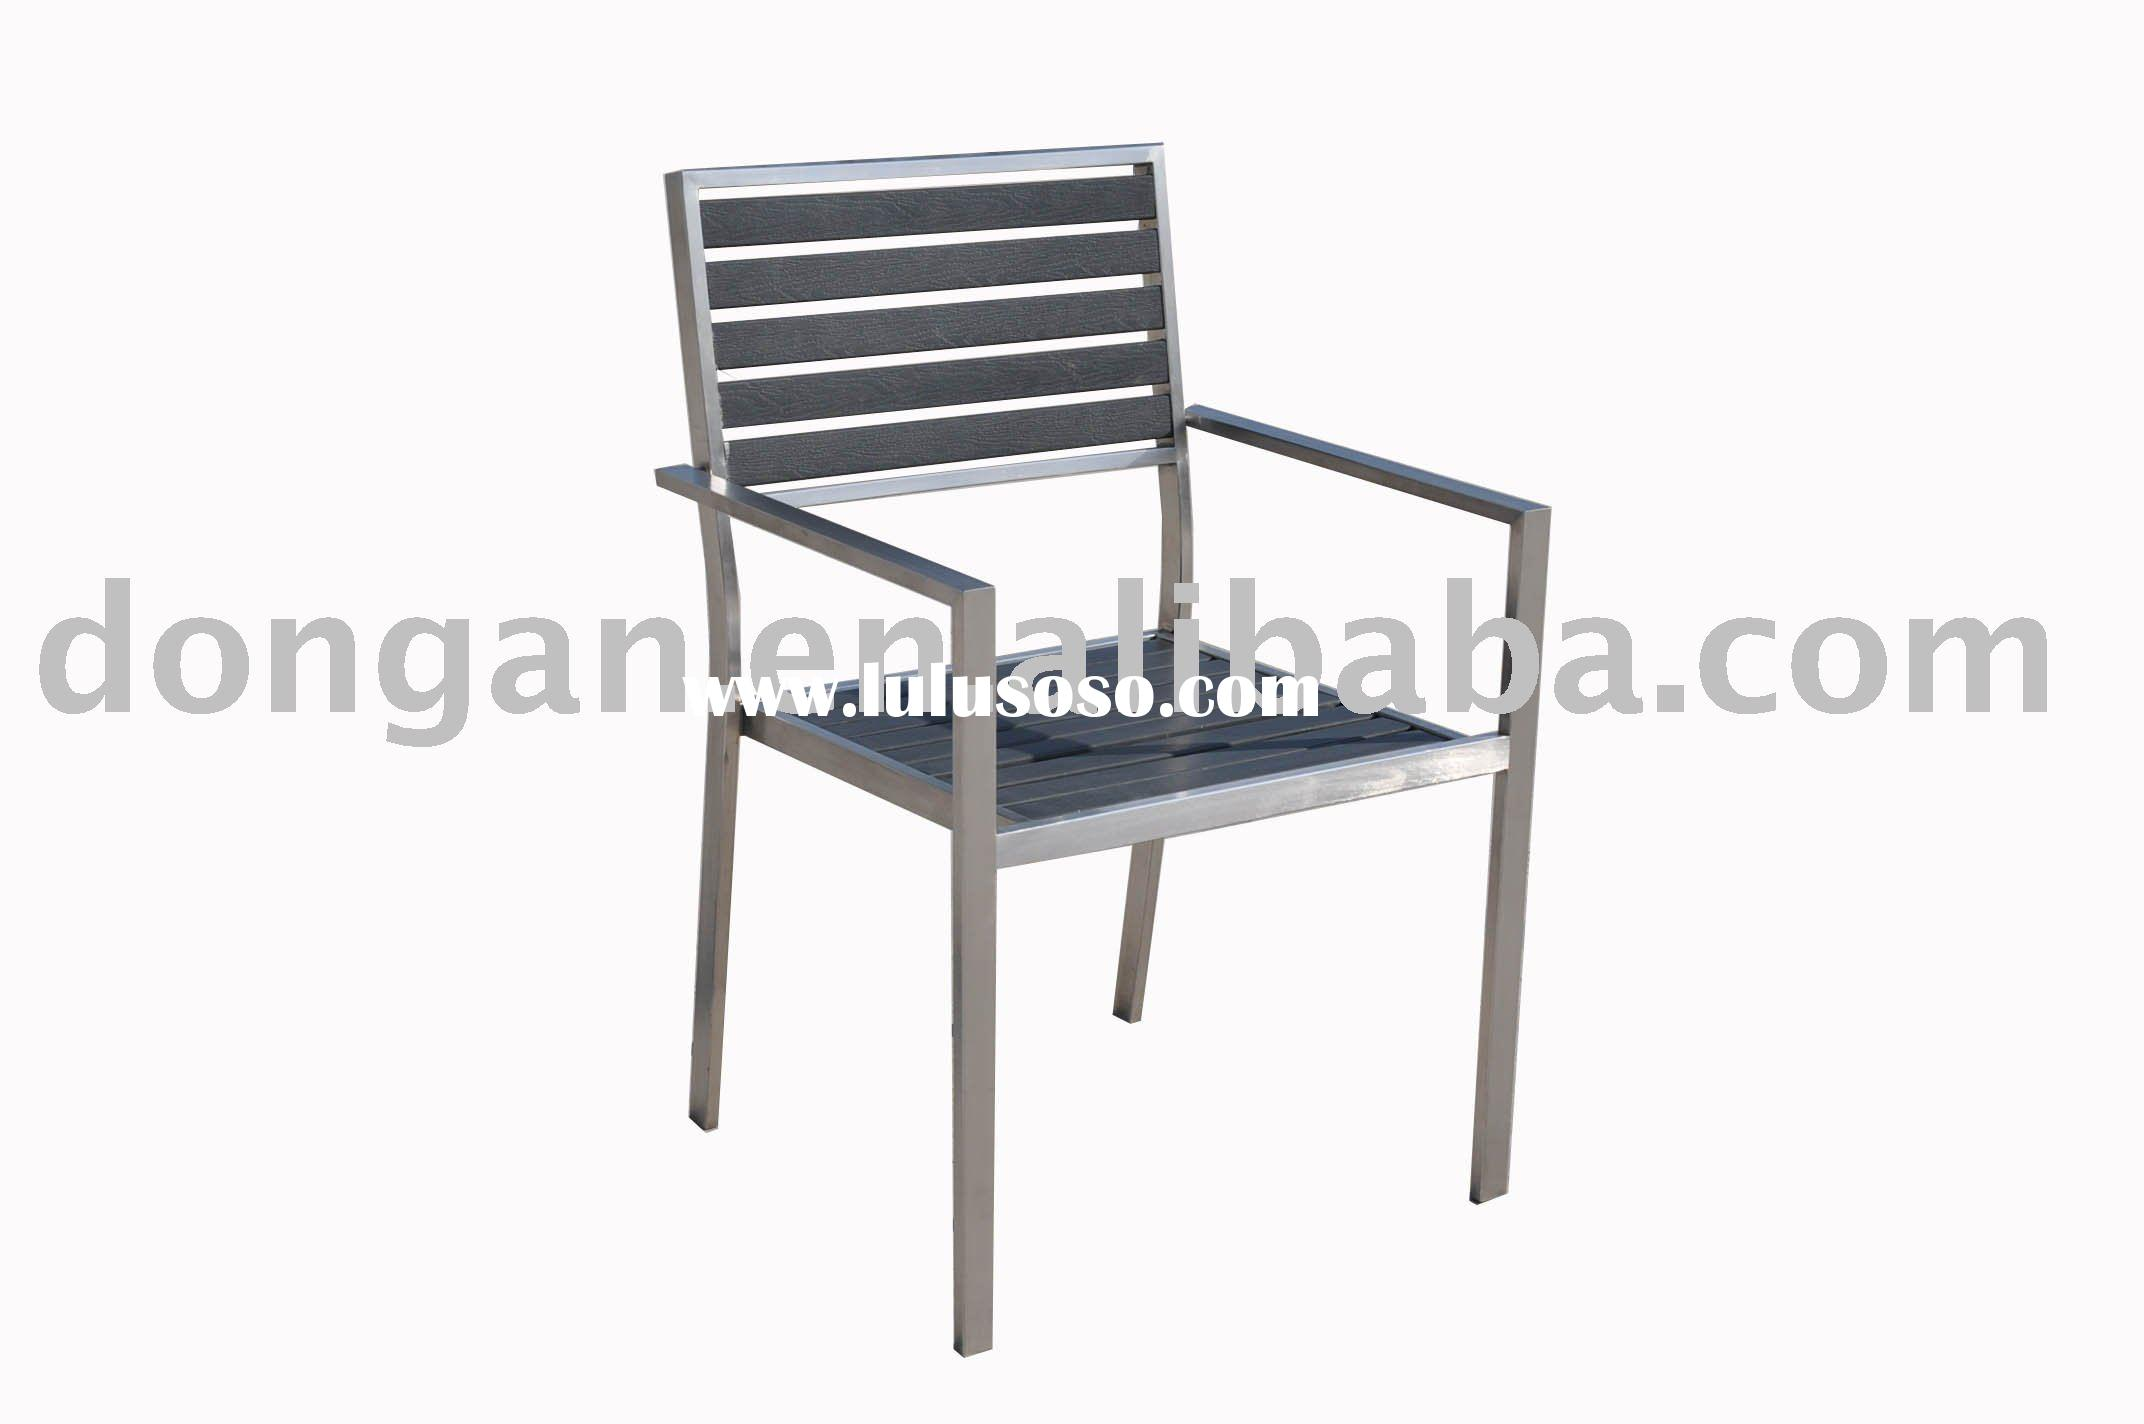 Fashionable stainless steel frame furniture indoor/outdoor/furnitureSPS-C02A chair